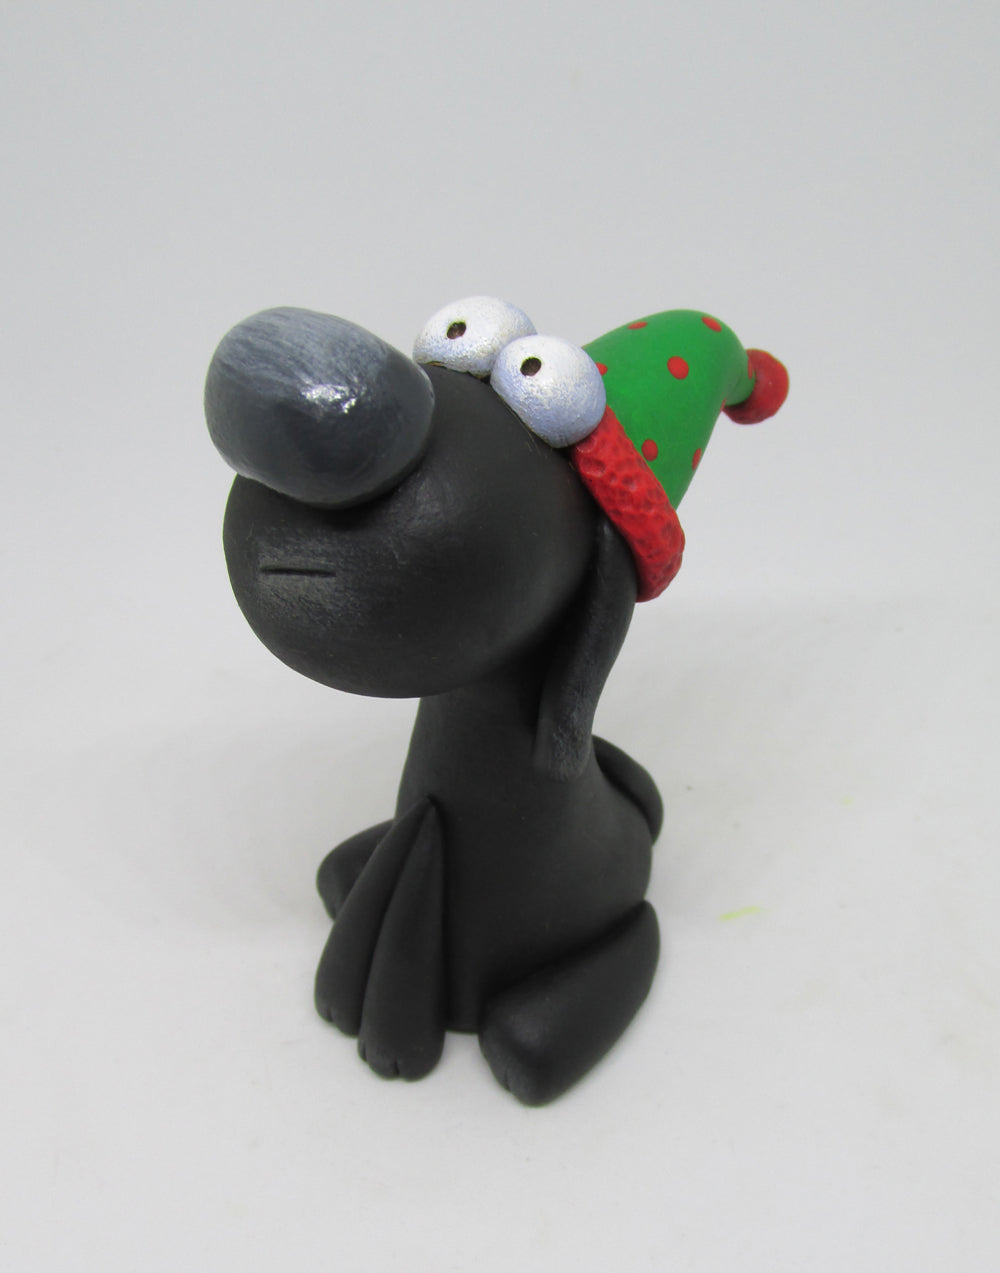 Christmas folk art dog wearing Santa hat with polka dots!